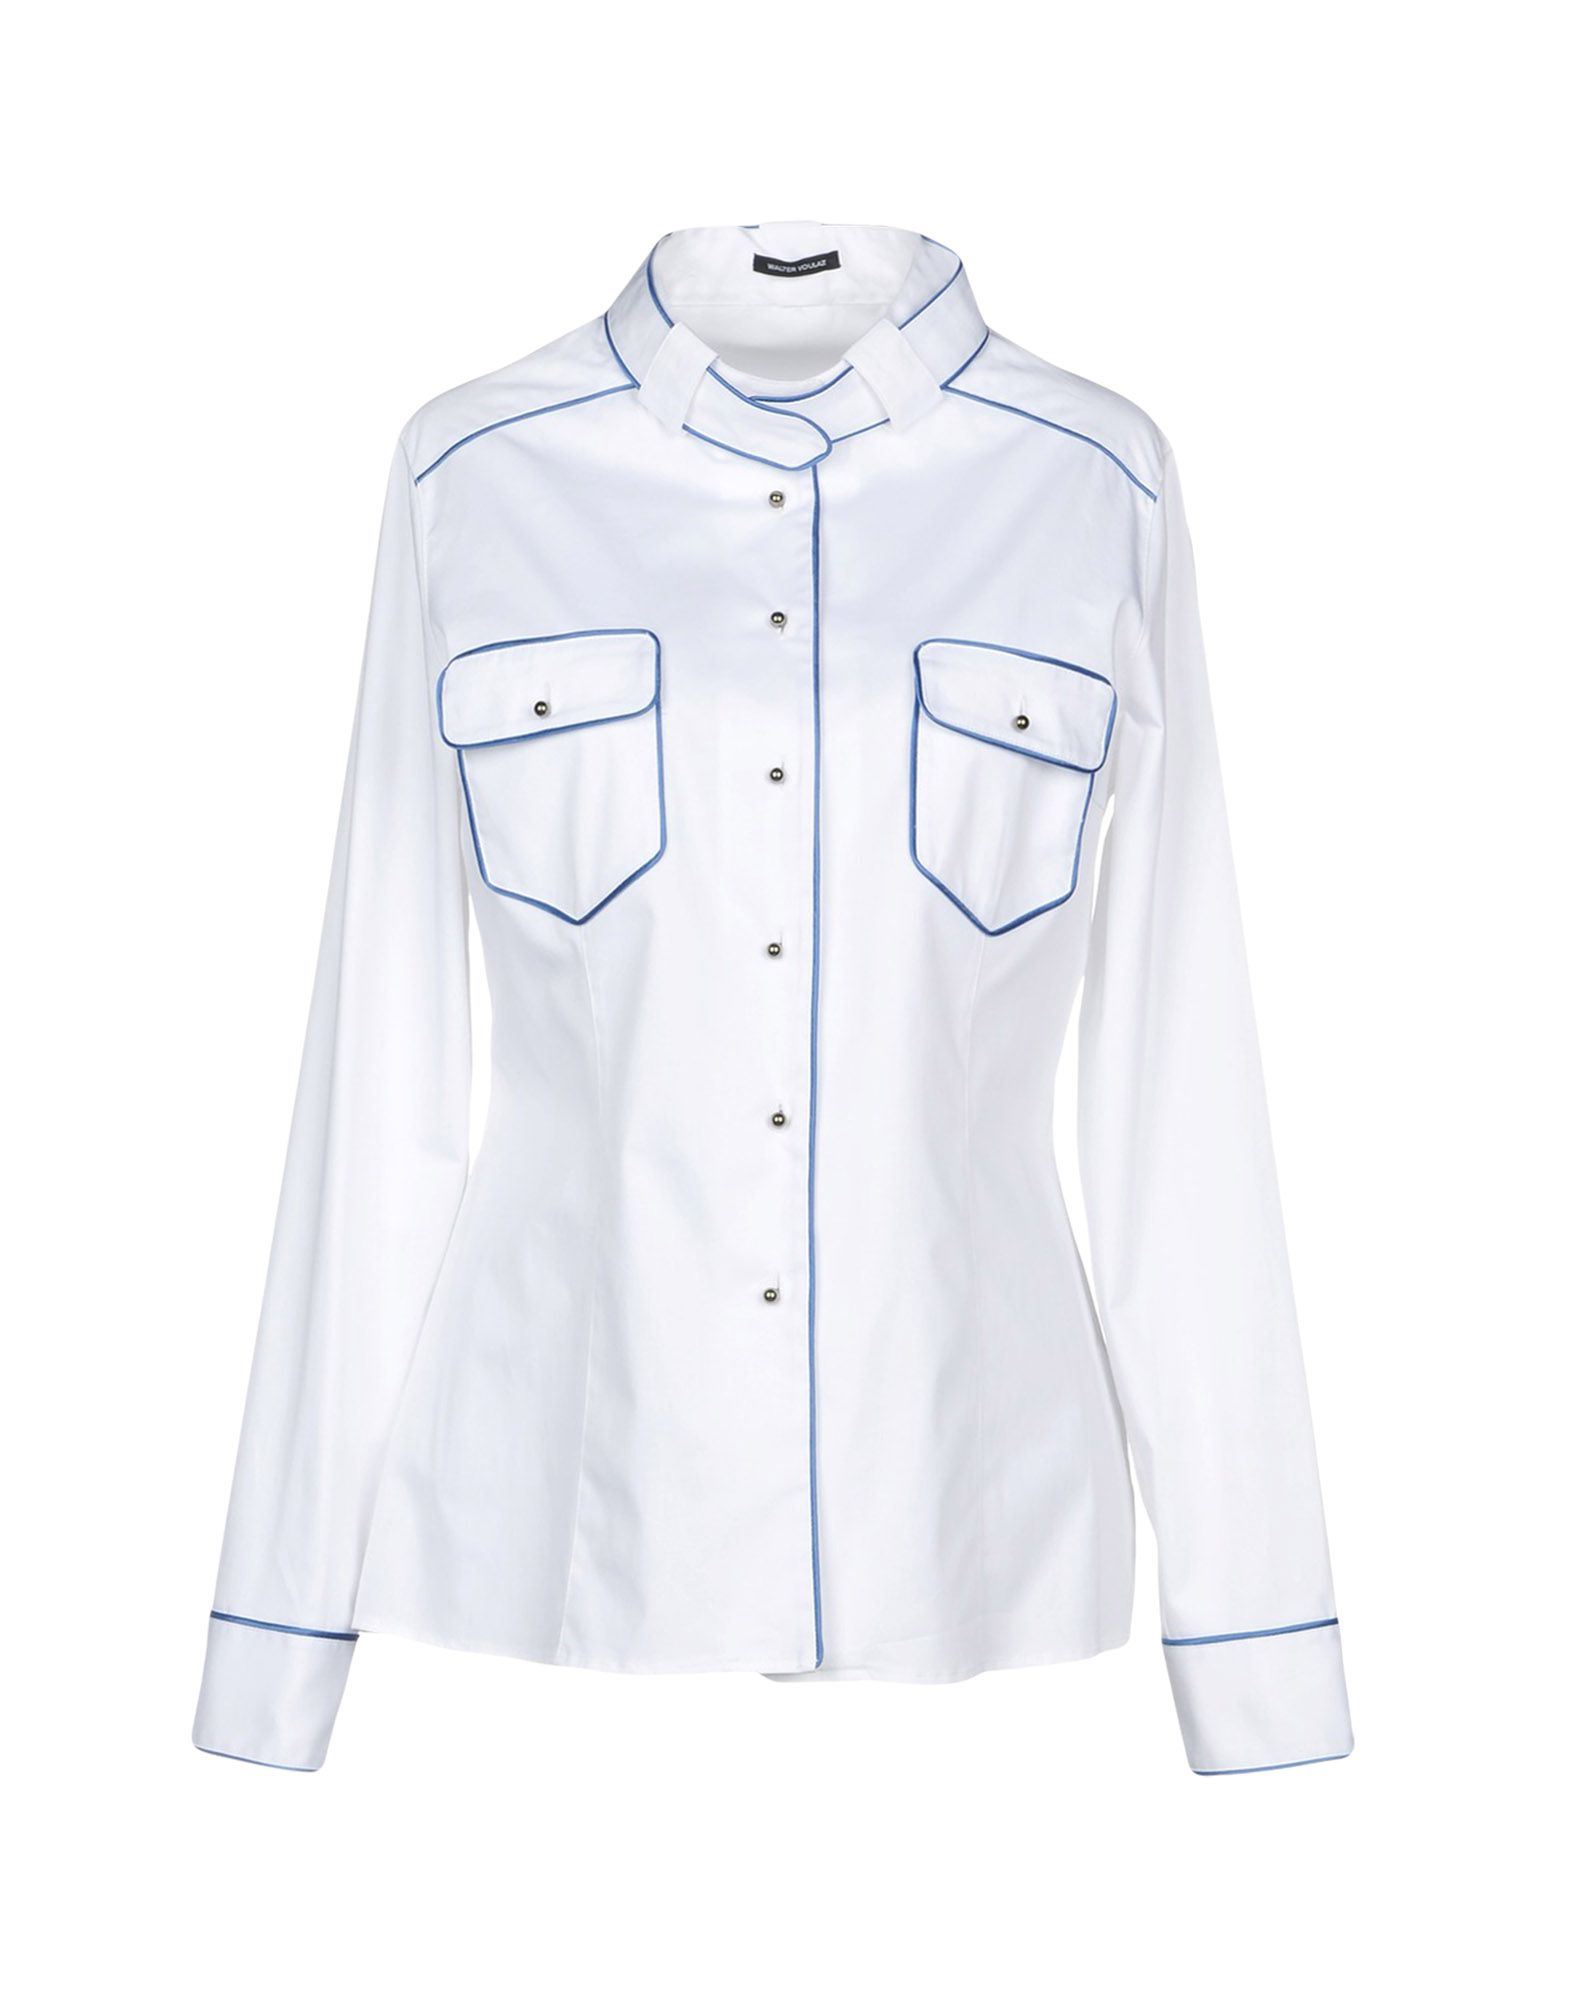 WALTER VOULAZ Solid Color Shirts & Blouses in White